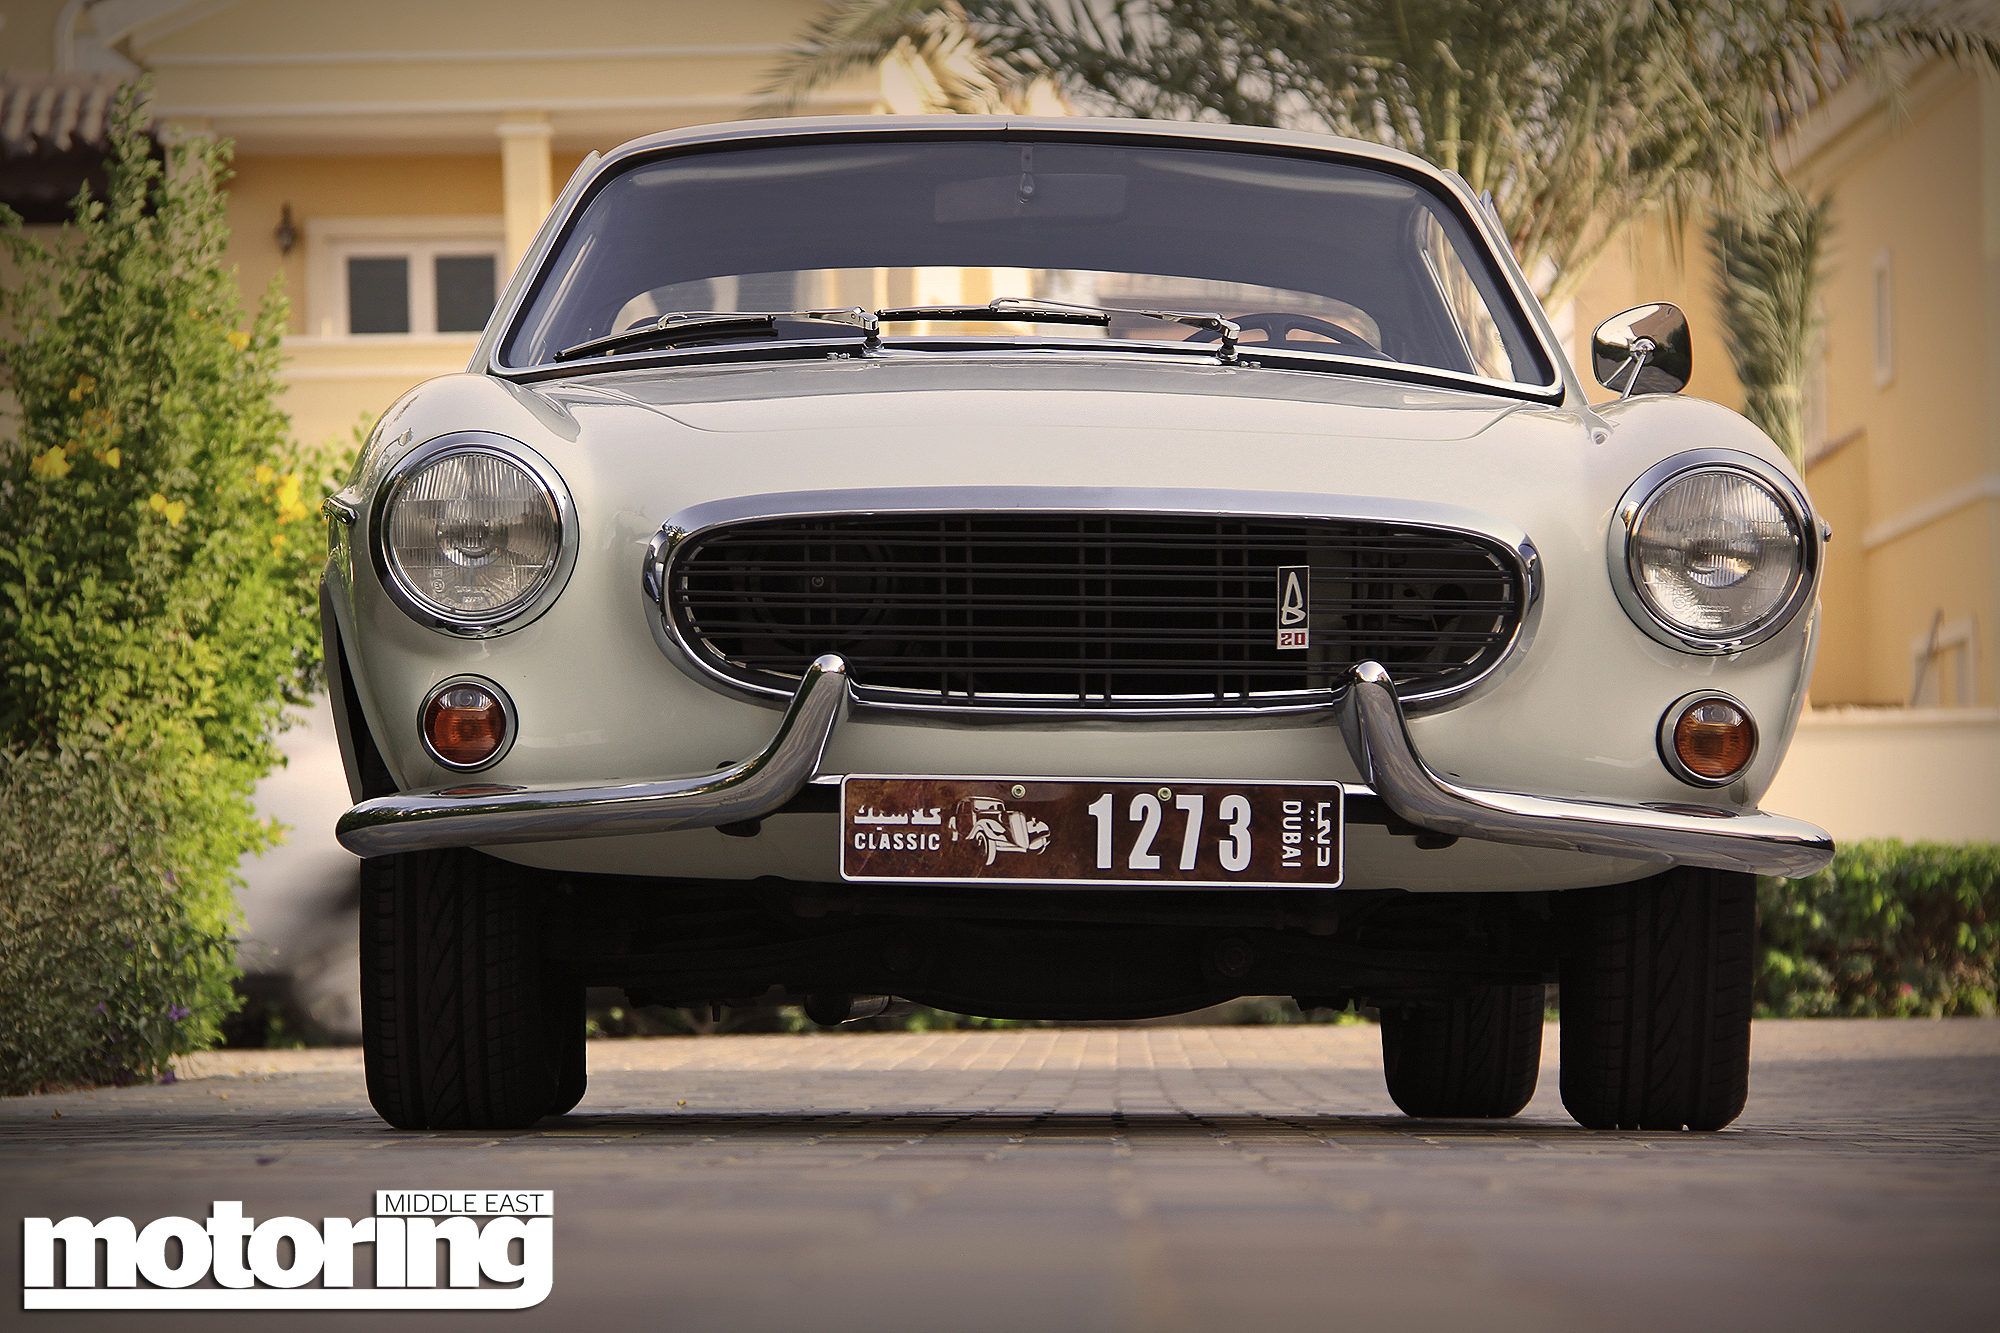 1970 Volvo P1800e Motoring Middle East Car News Reviews And